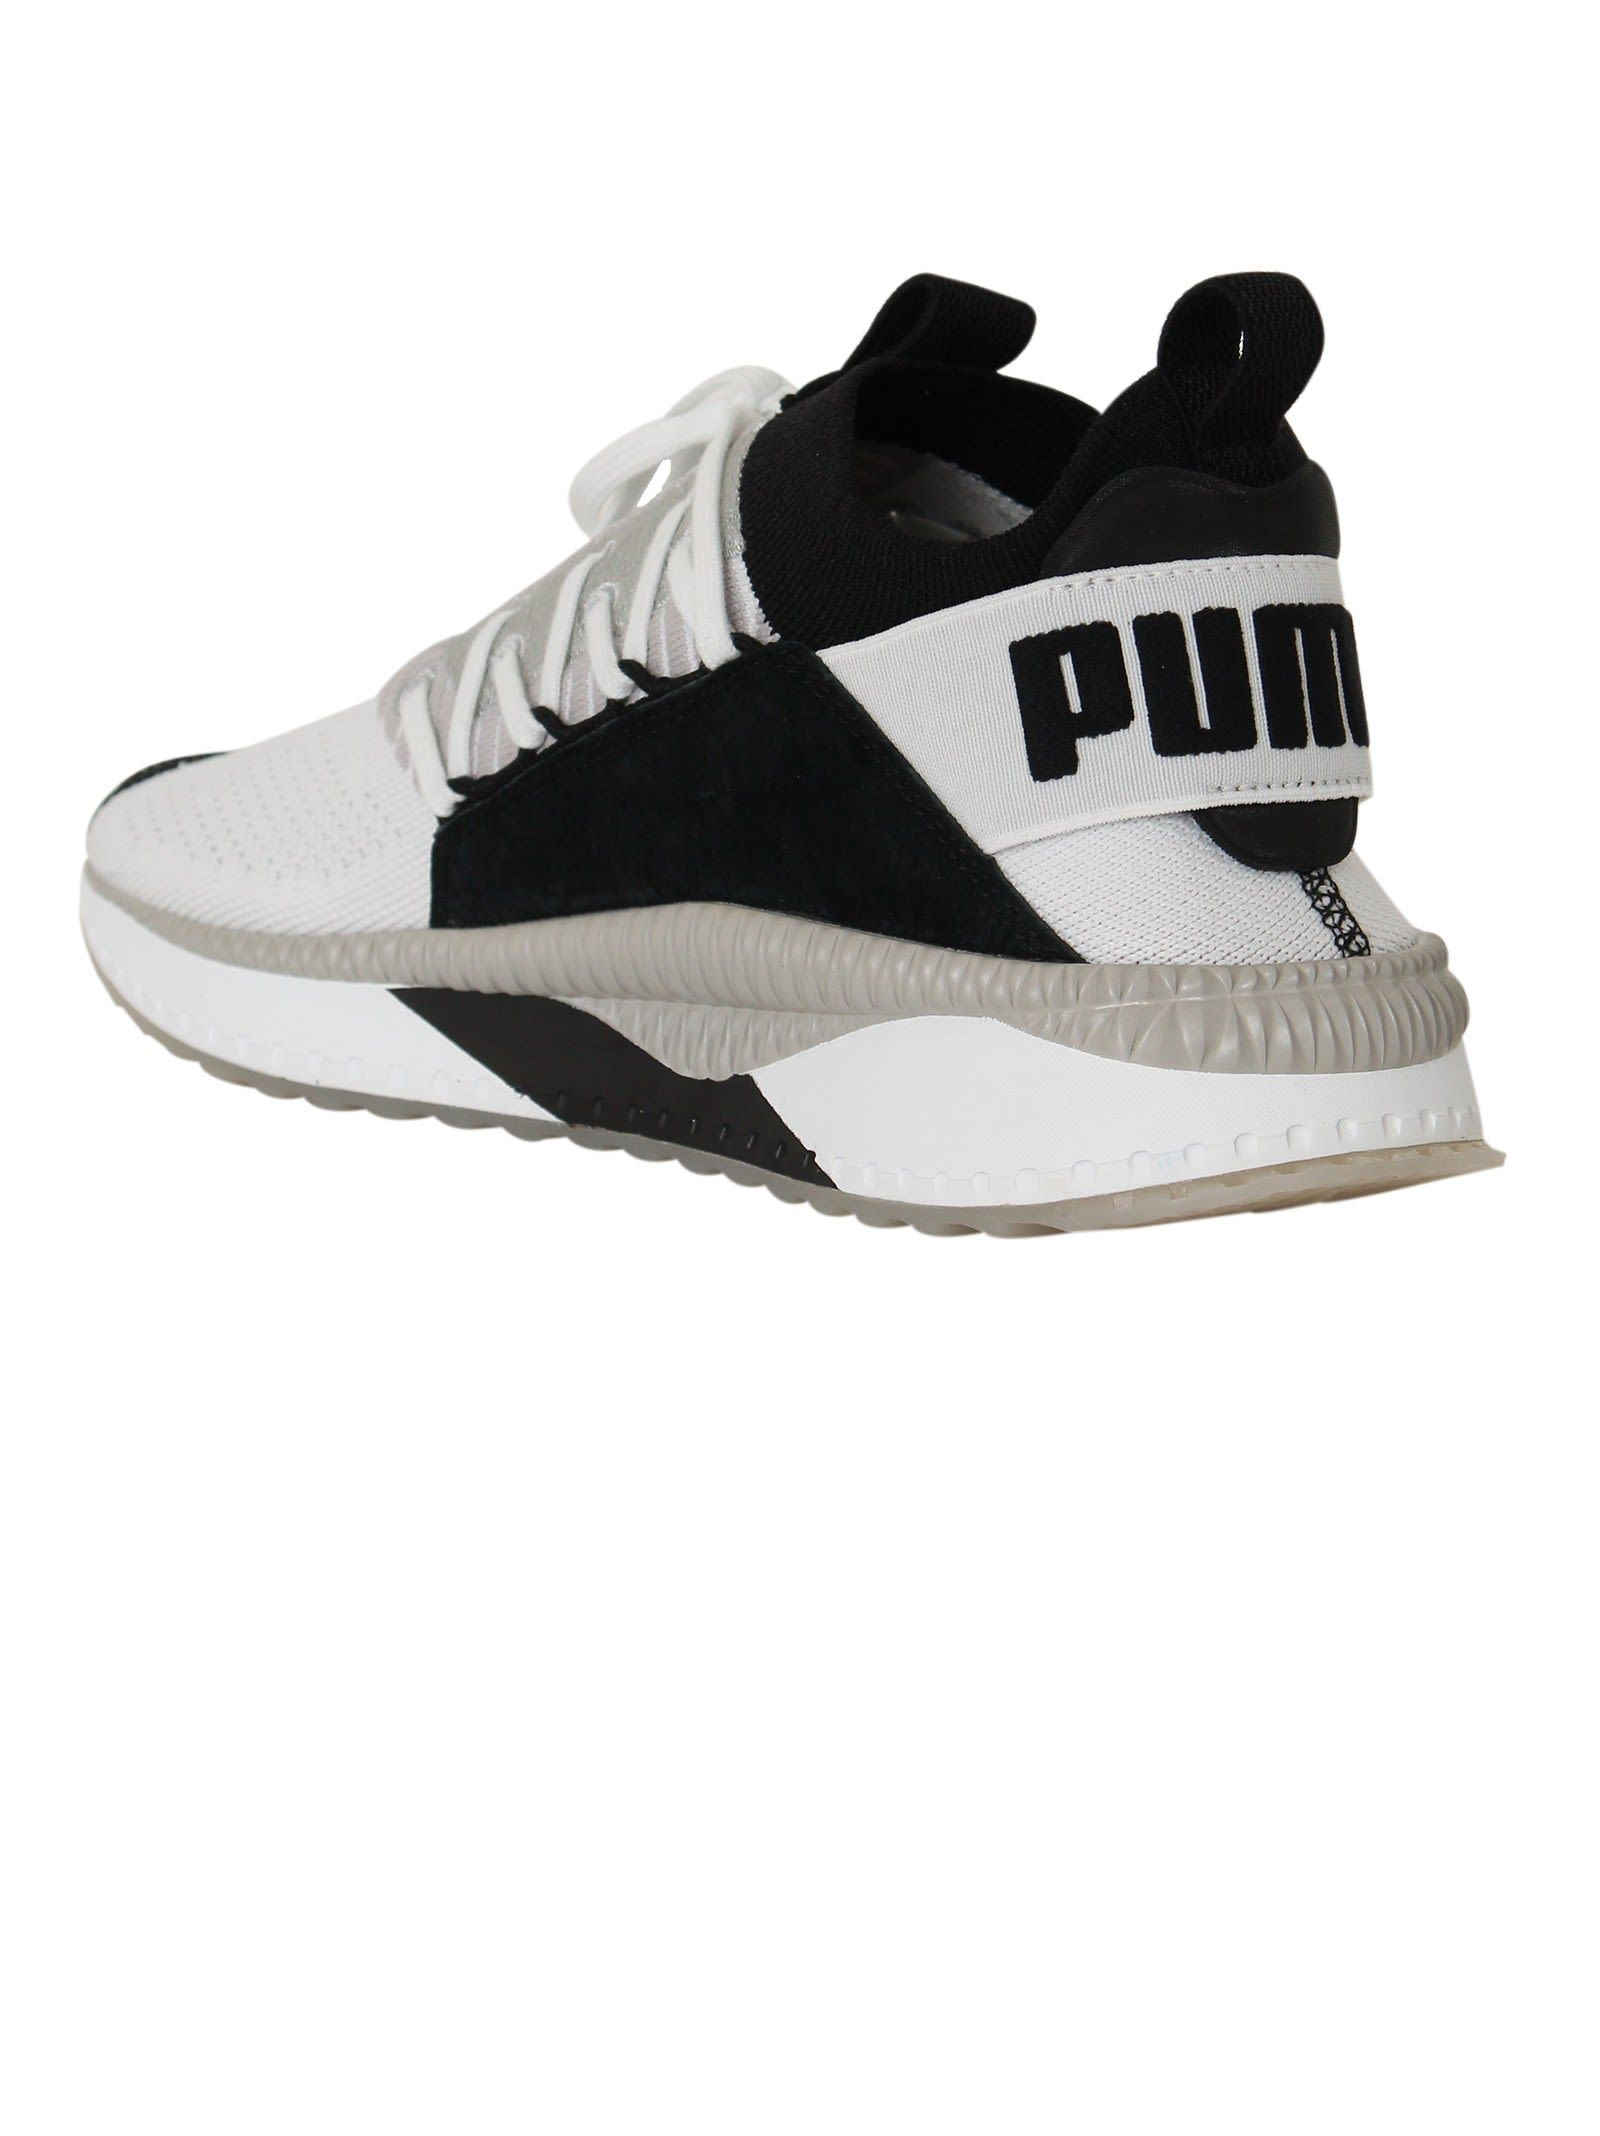 PUMA Roma Basic (With images) | Sneakers men fashion, Mens